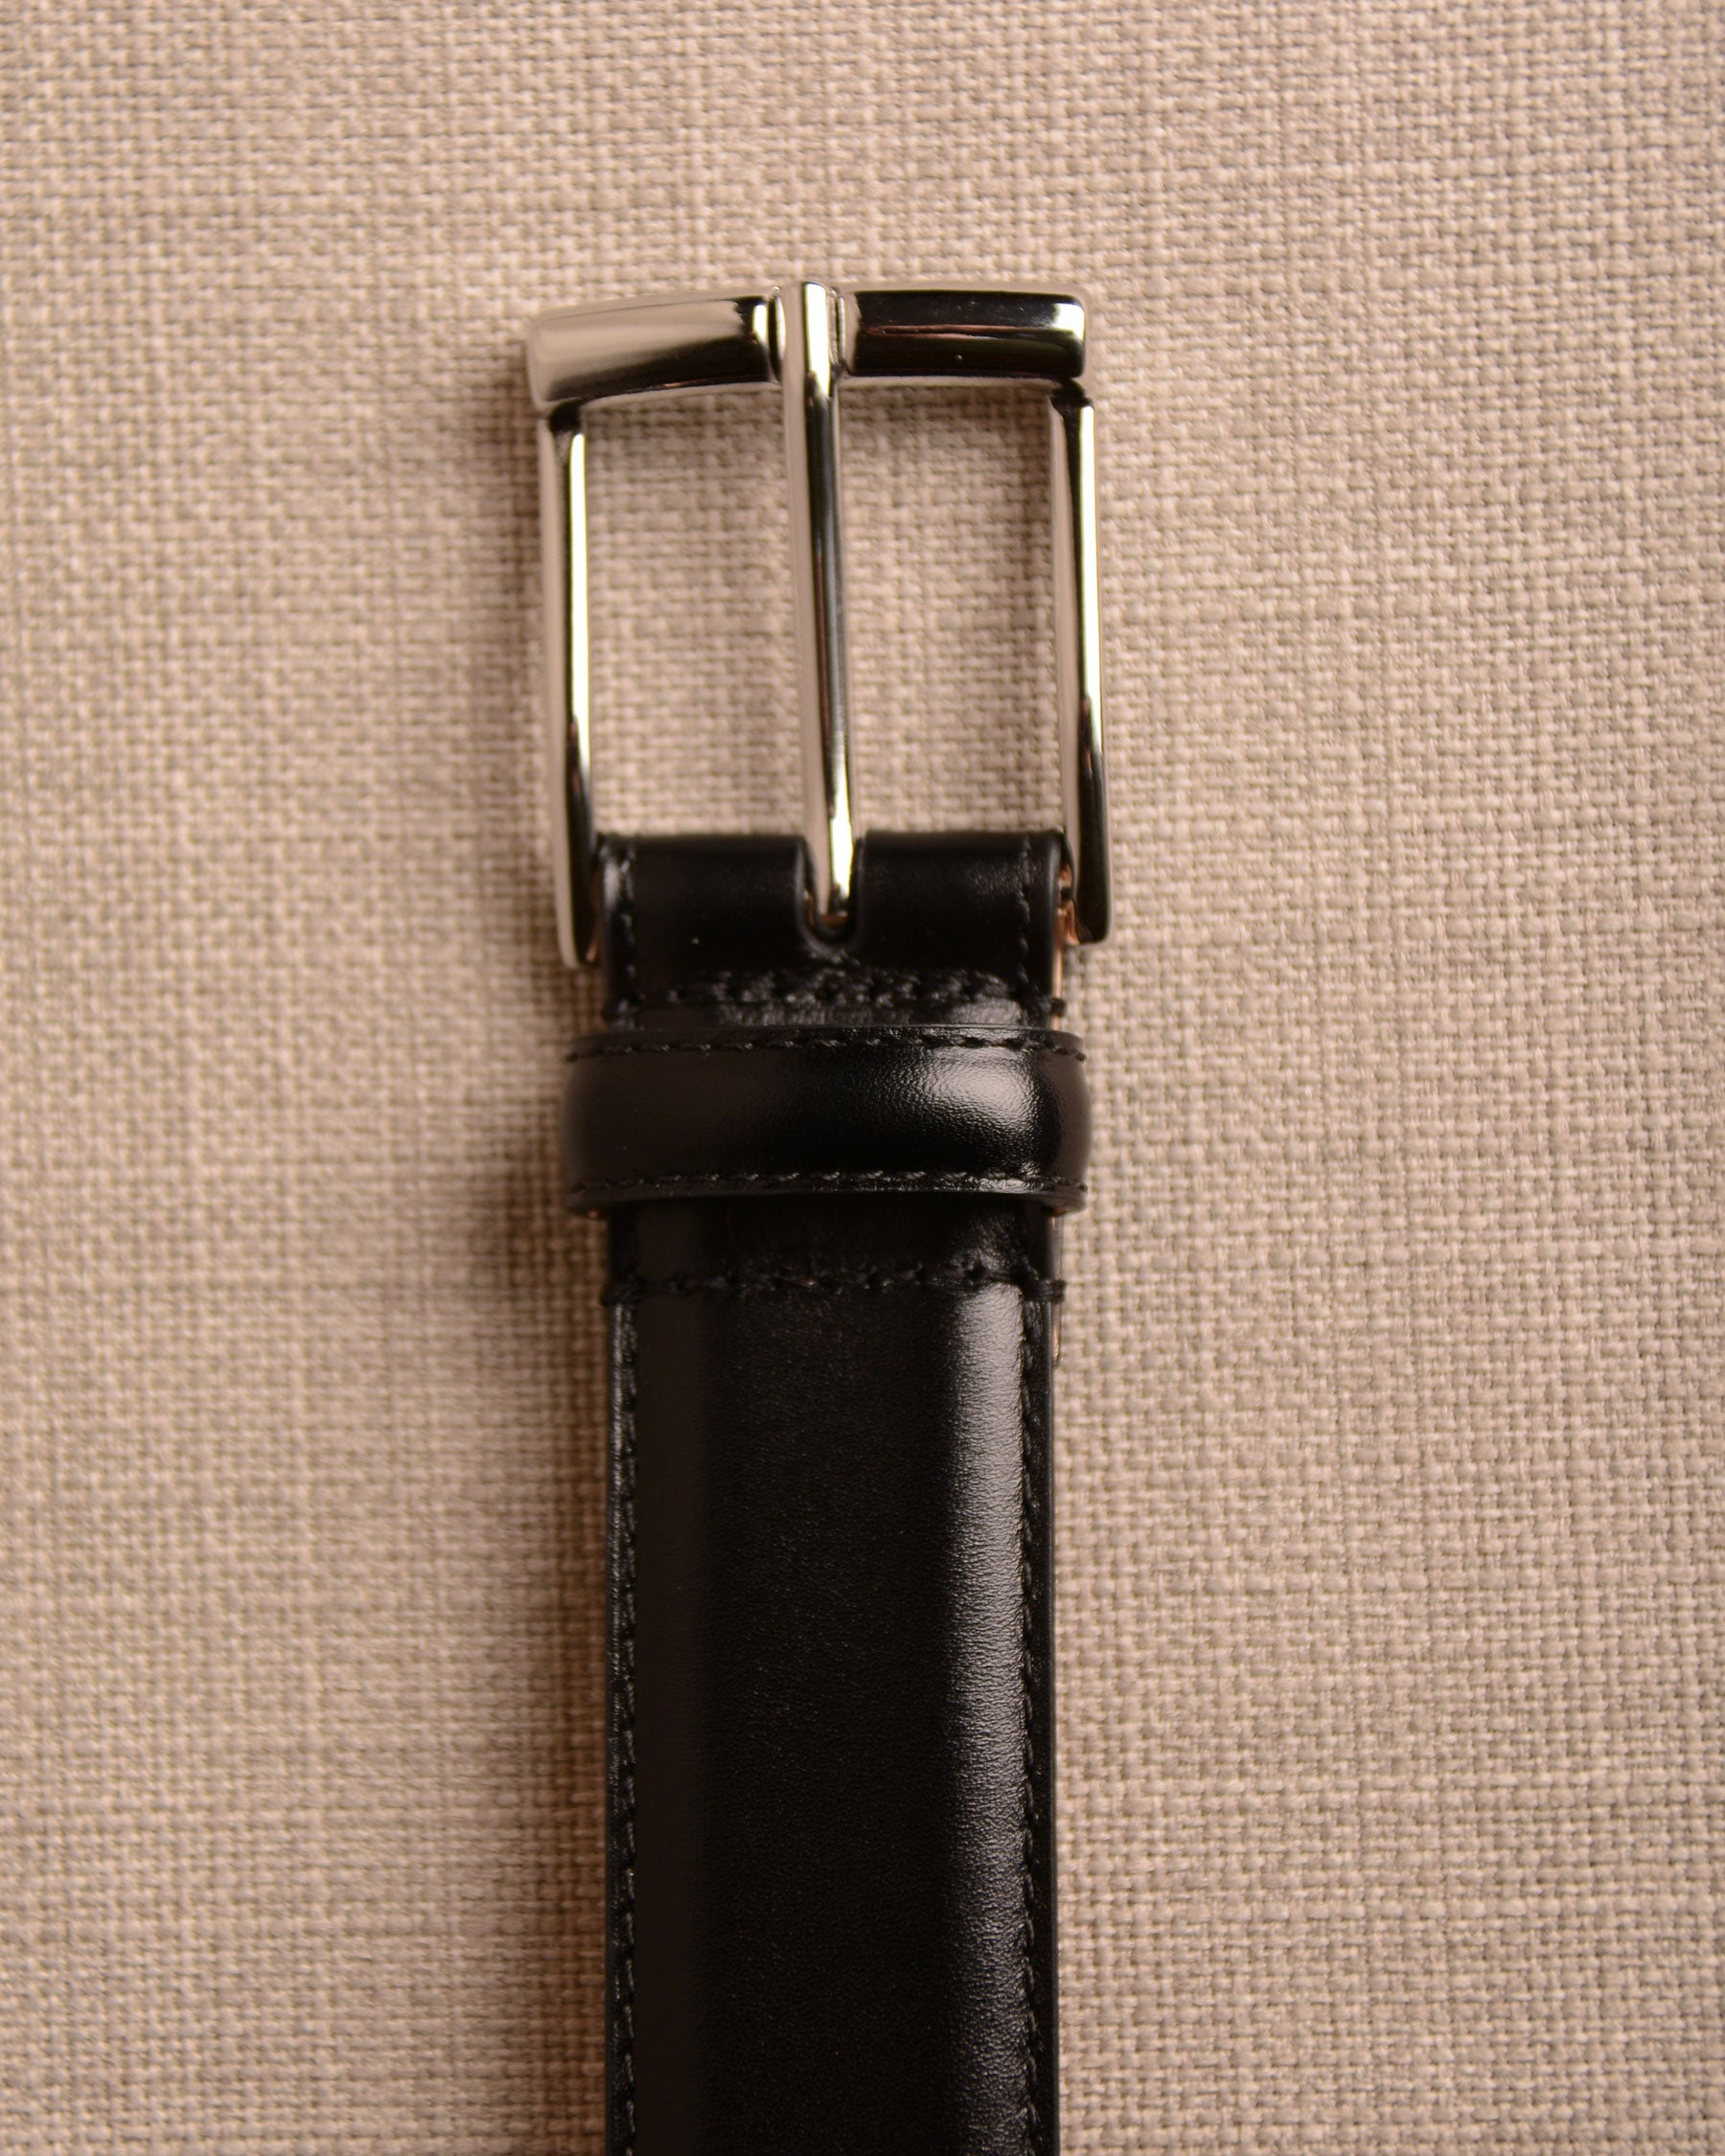 Crockett & Jones - Belt Black Calf